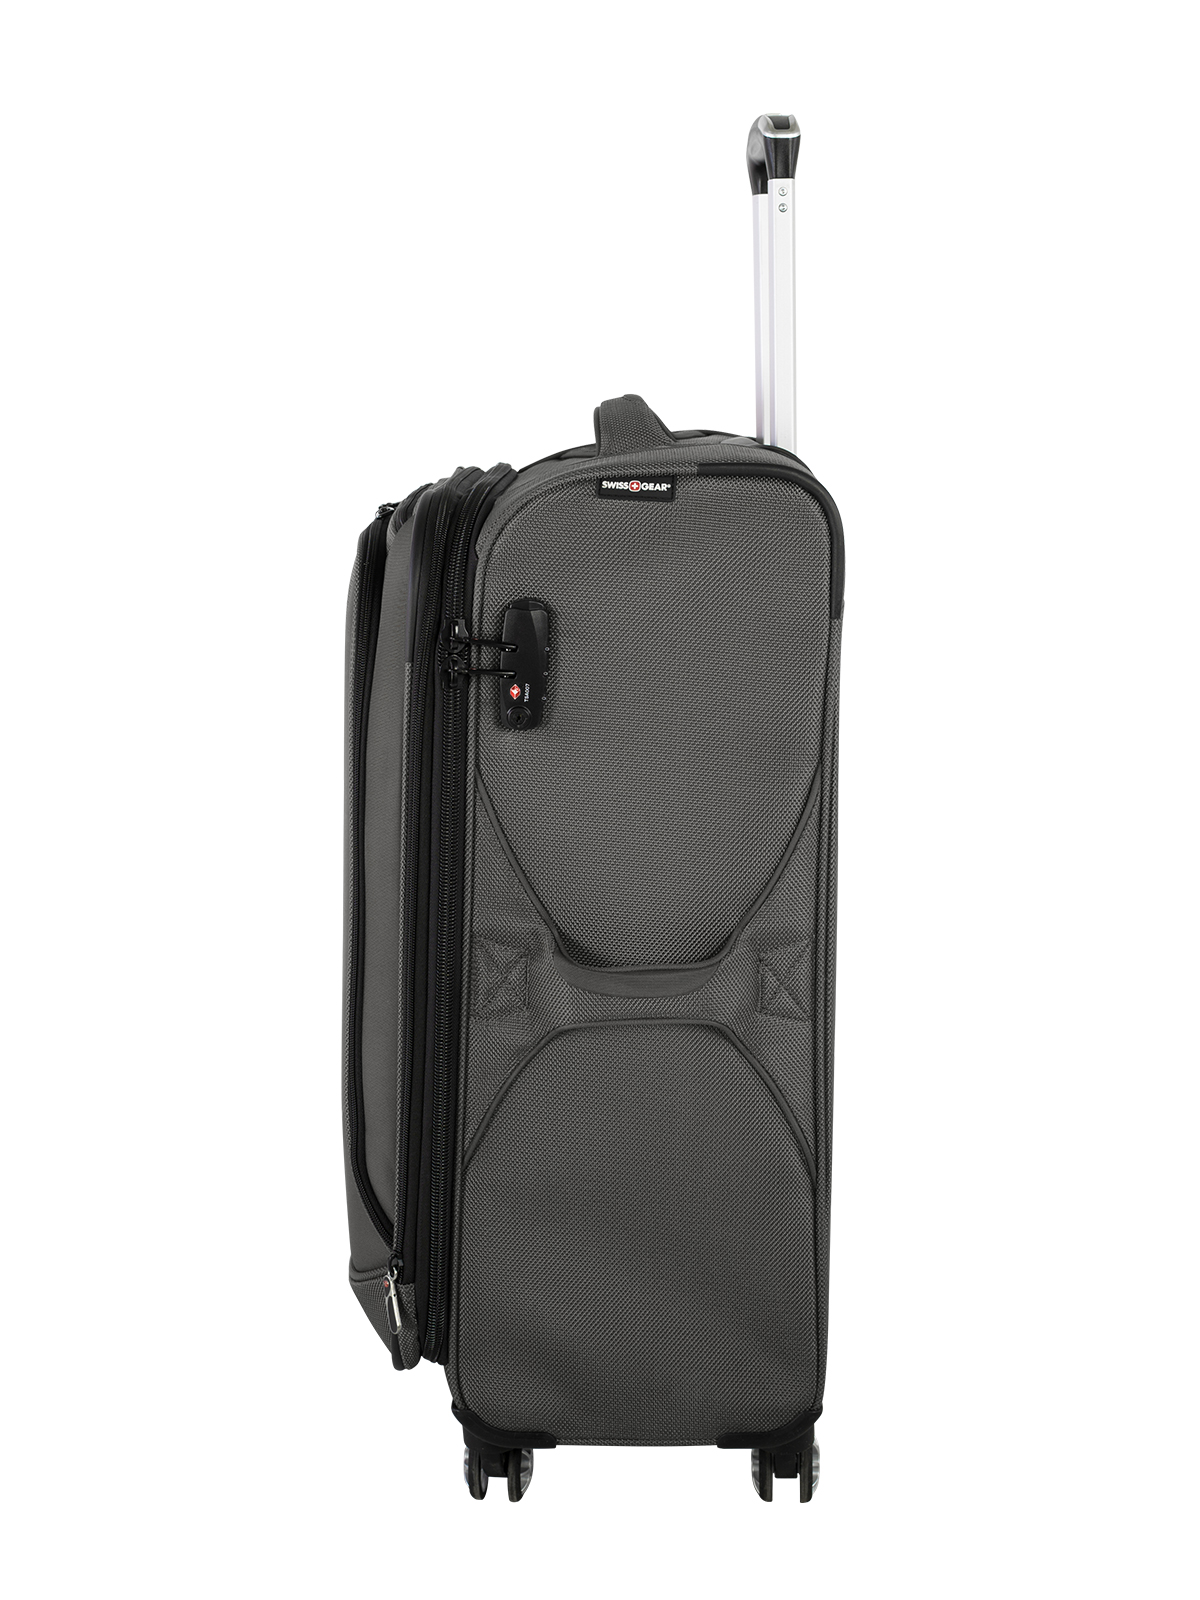 Swiss Gear Neolite 3 Collection 29 Quot Expandable Soft Side